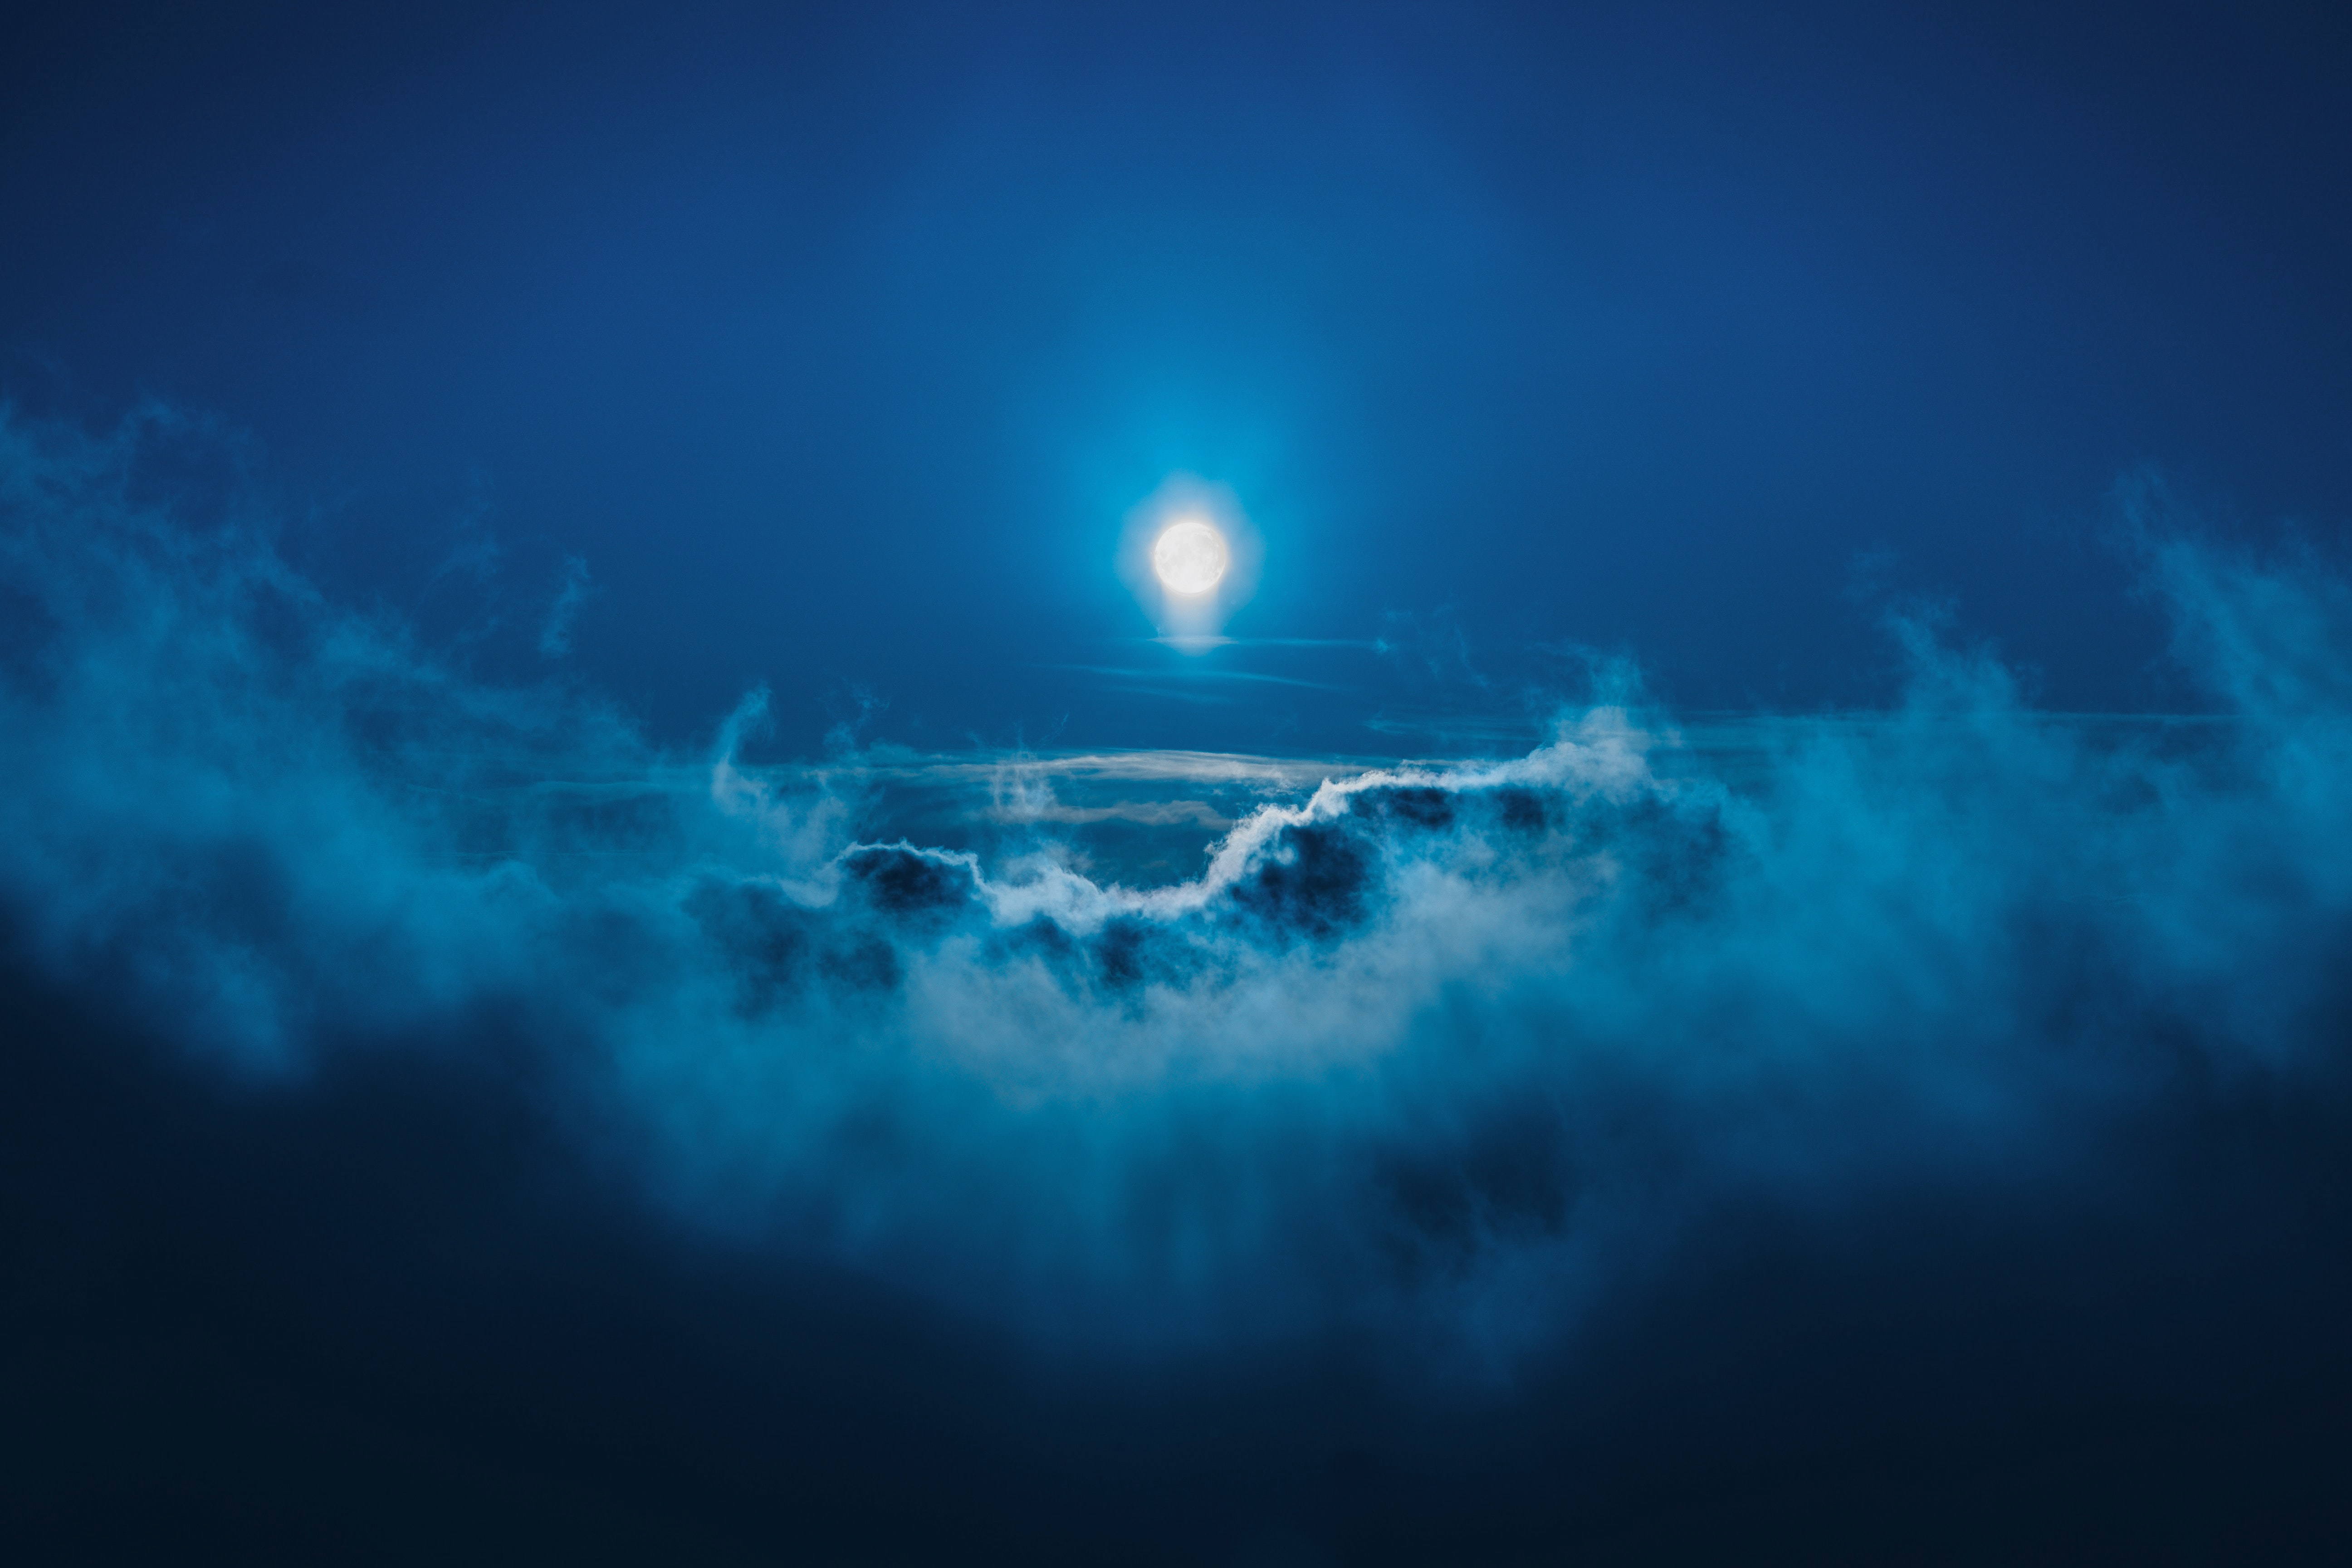 full moon along clouds